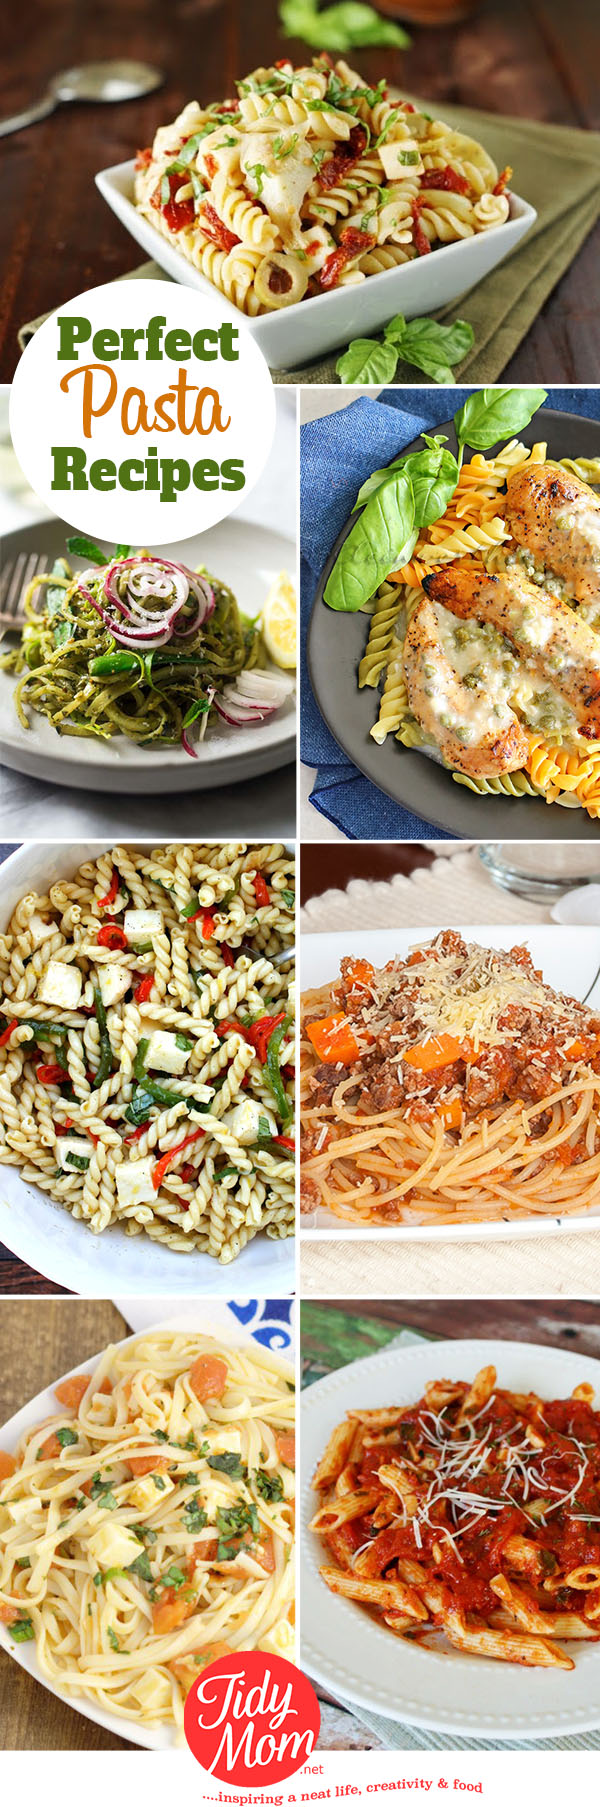 Perfect Pasta Recipes | I'm Lovin' It {linky party}